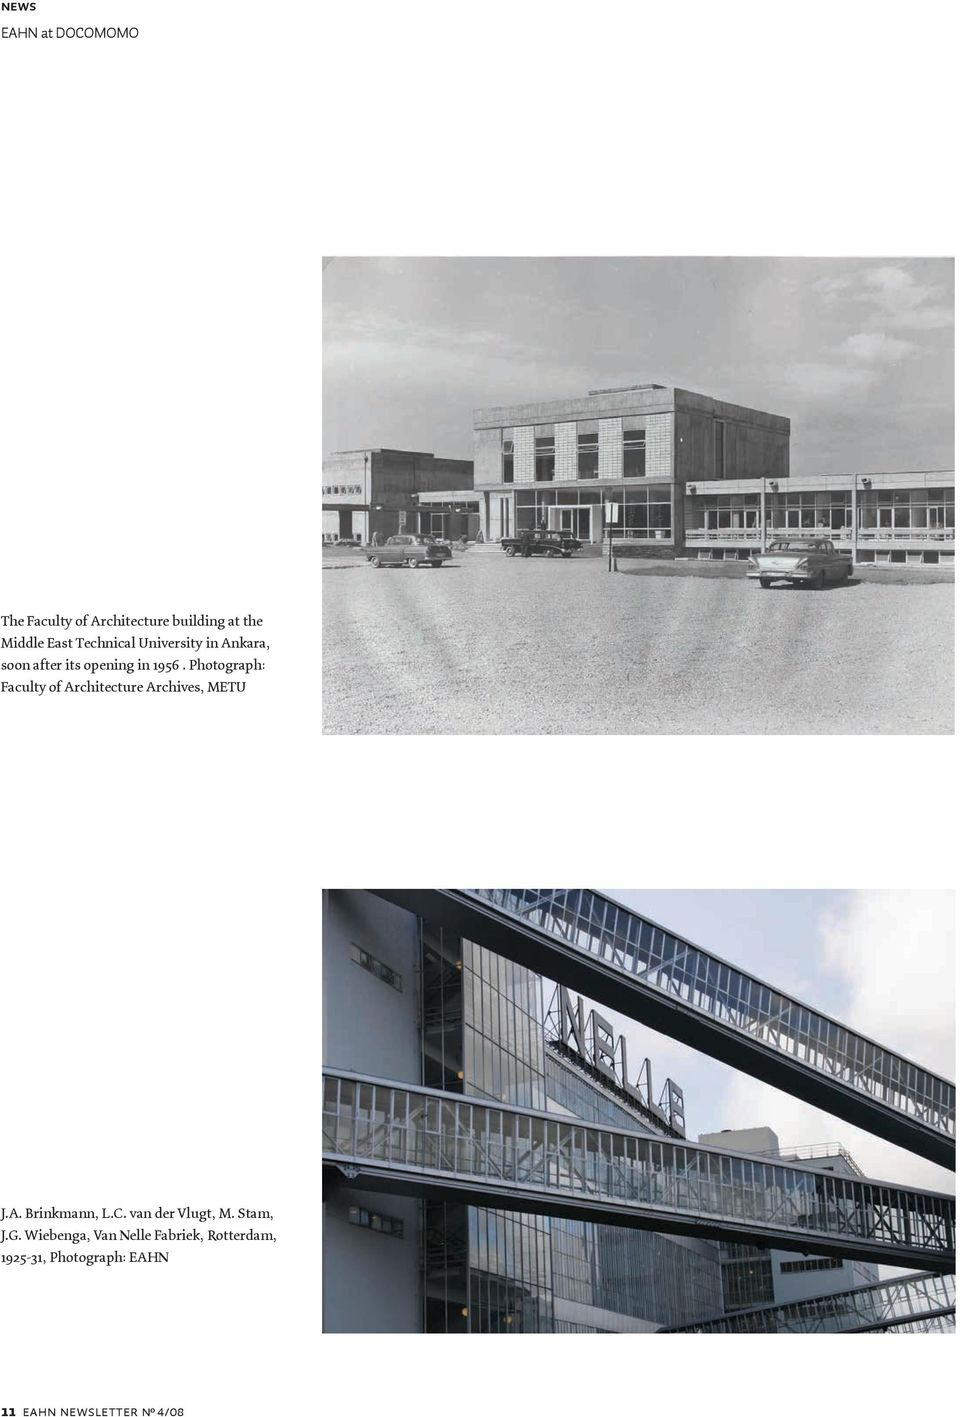 Photograph: Faculty of Architecture Archives, METU J.A. Brinkmann, L.C.